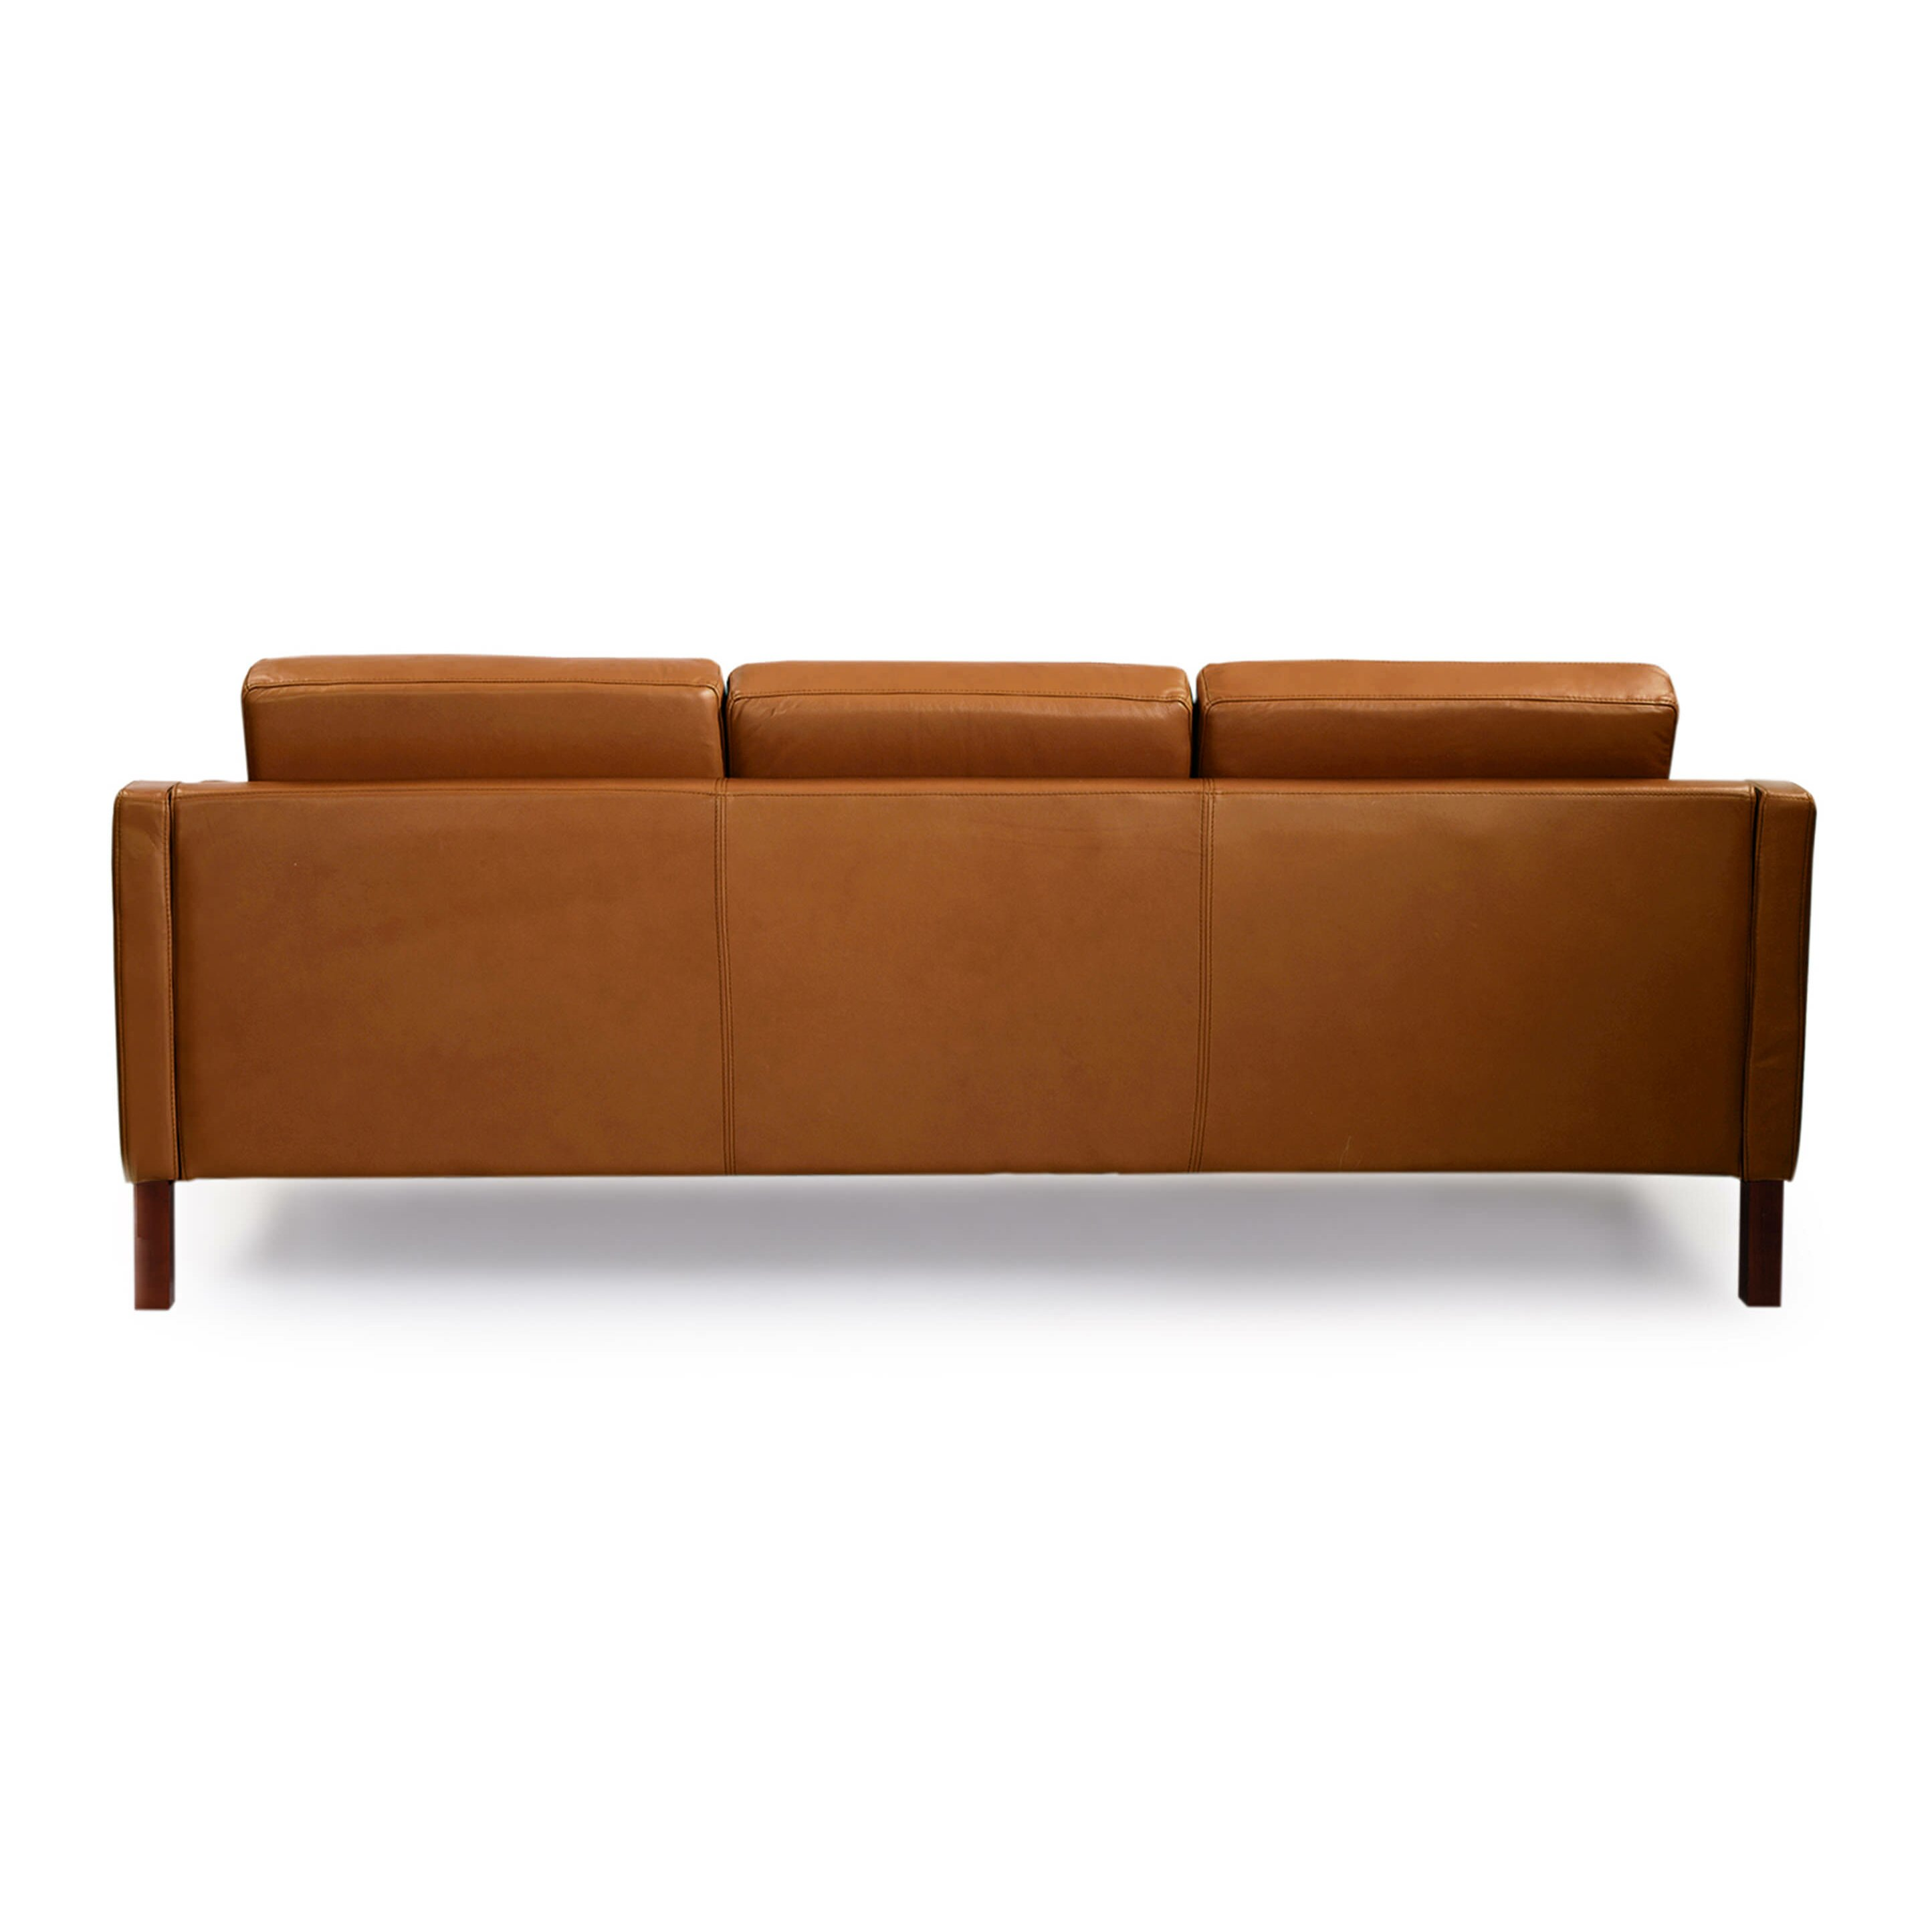 monroe mid century modern leather sofa by kardiel